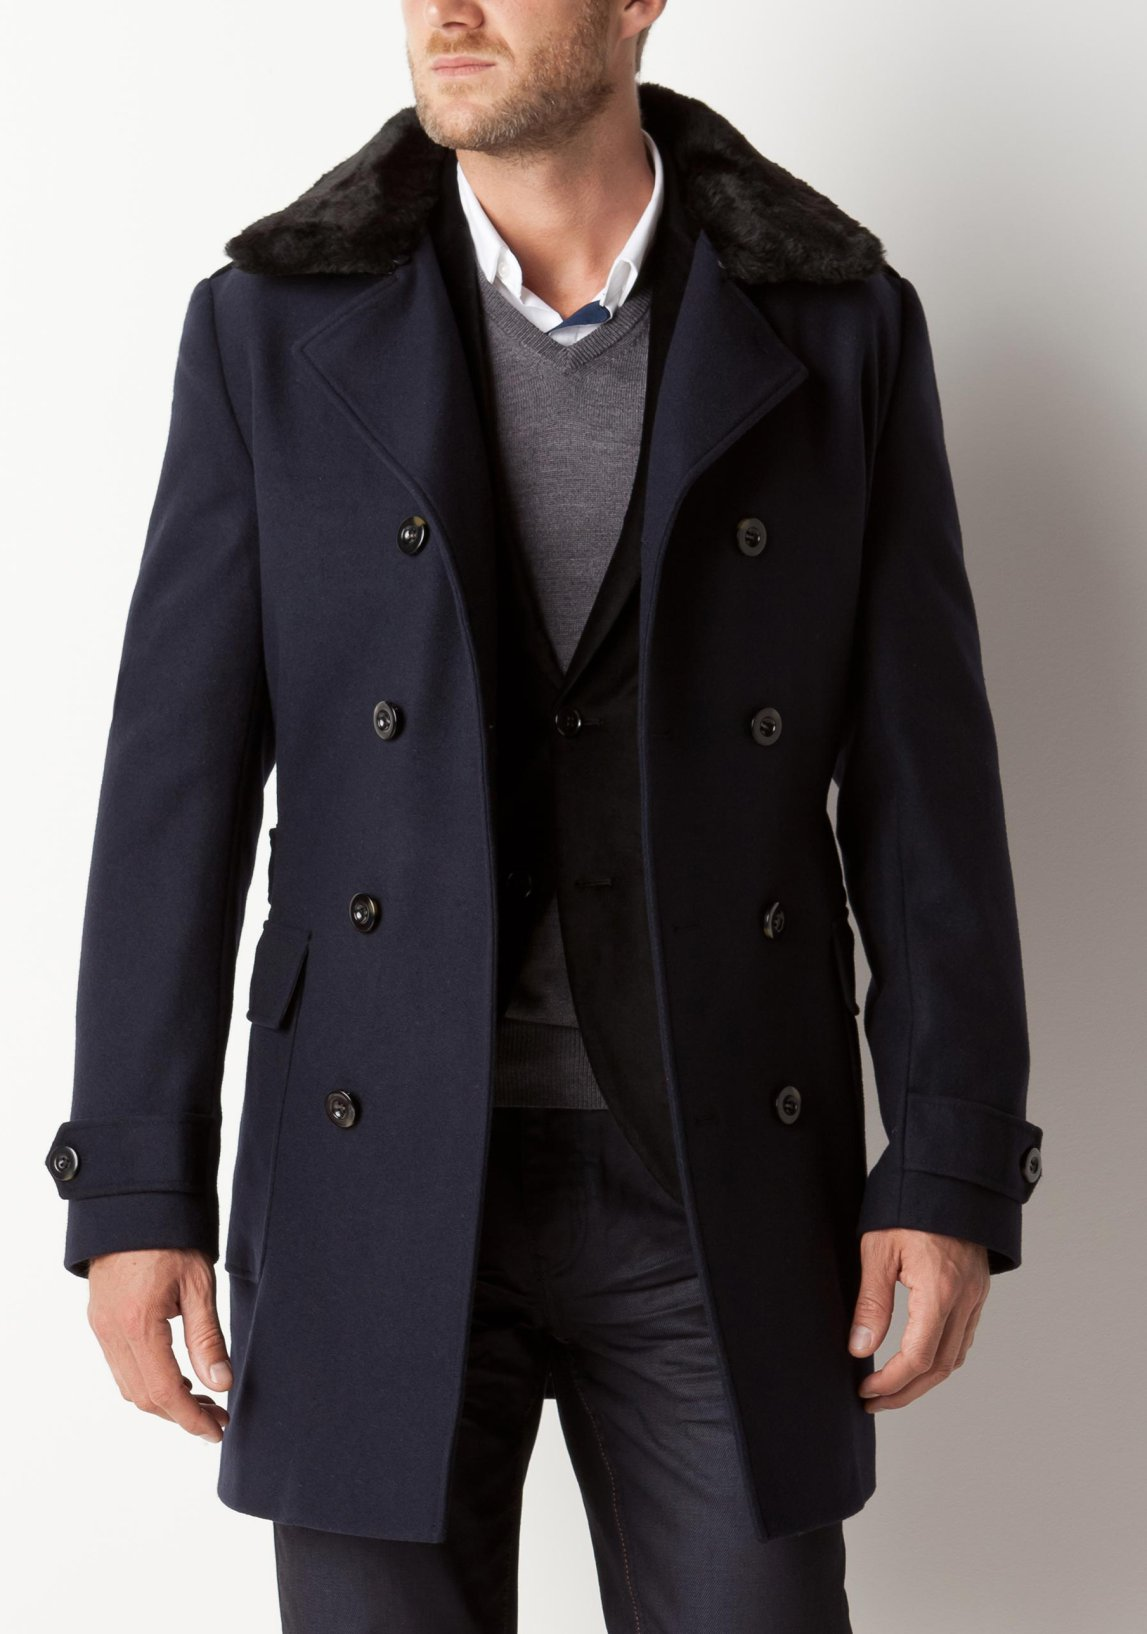 Homme De NoirUn Garde Must La Have Long Manteau Robe wTOPXZukil